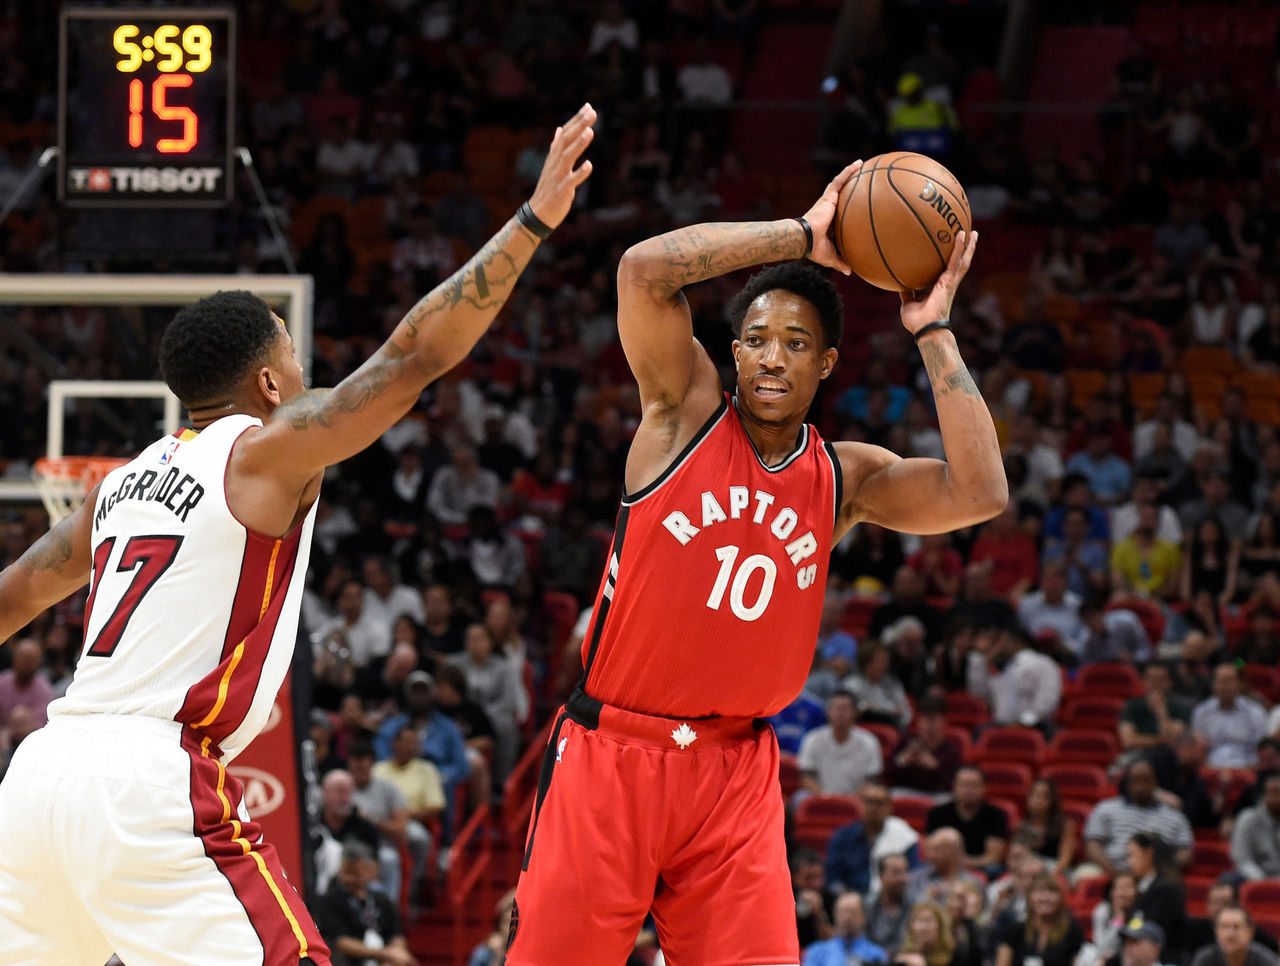 Cropped 2017 03 24t004501z 406787236 nocid rtrmadp 3 nba toronto raptors at miami heat